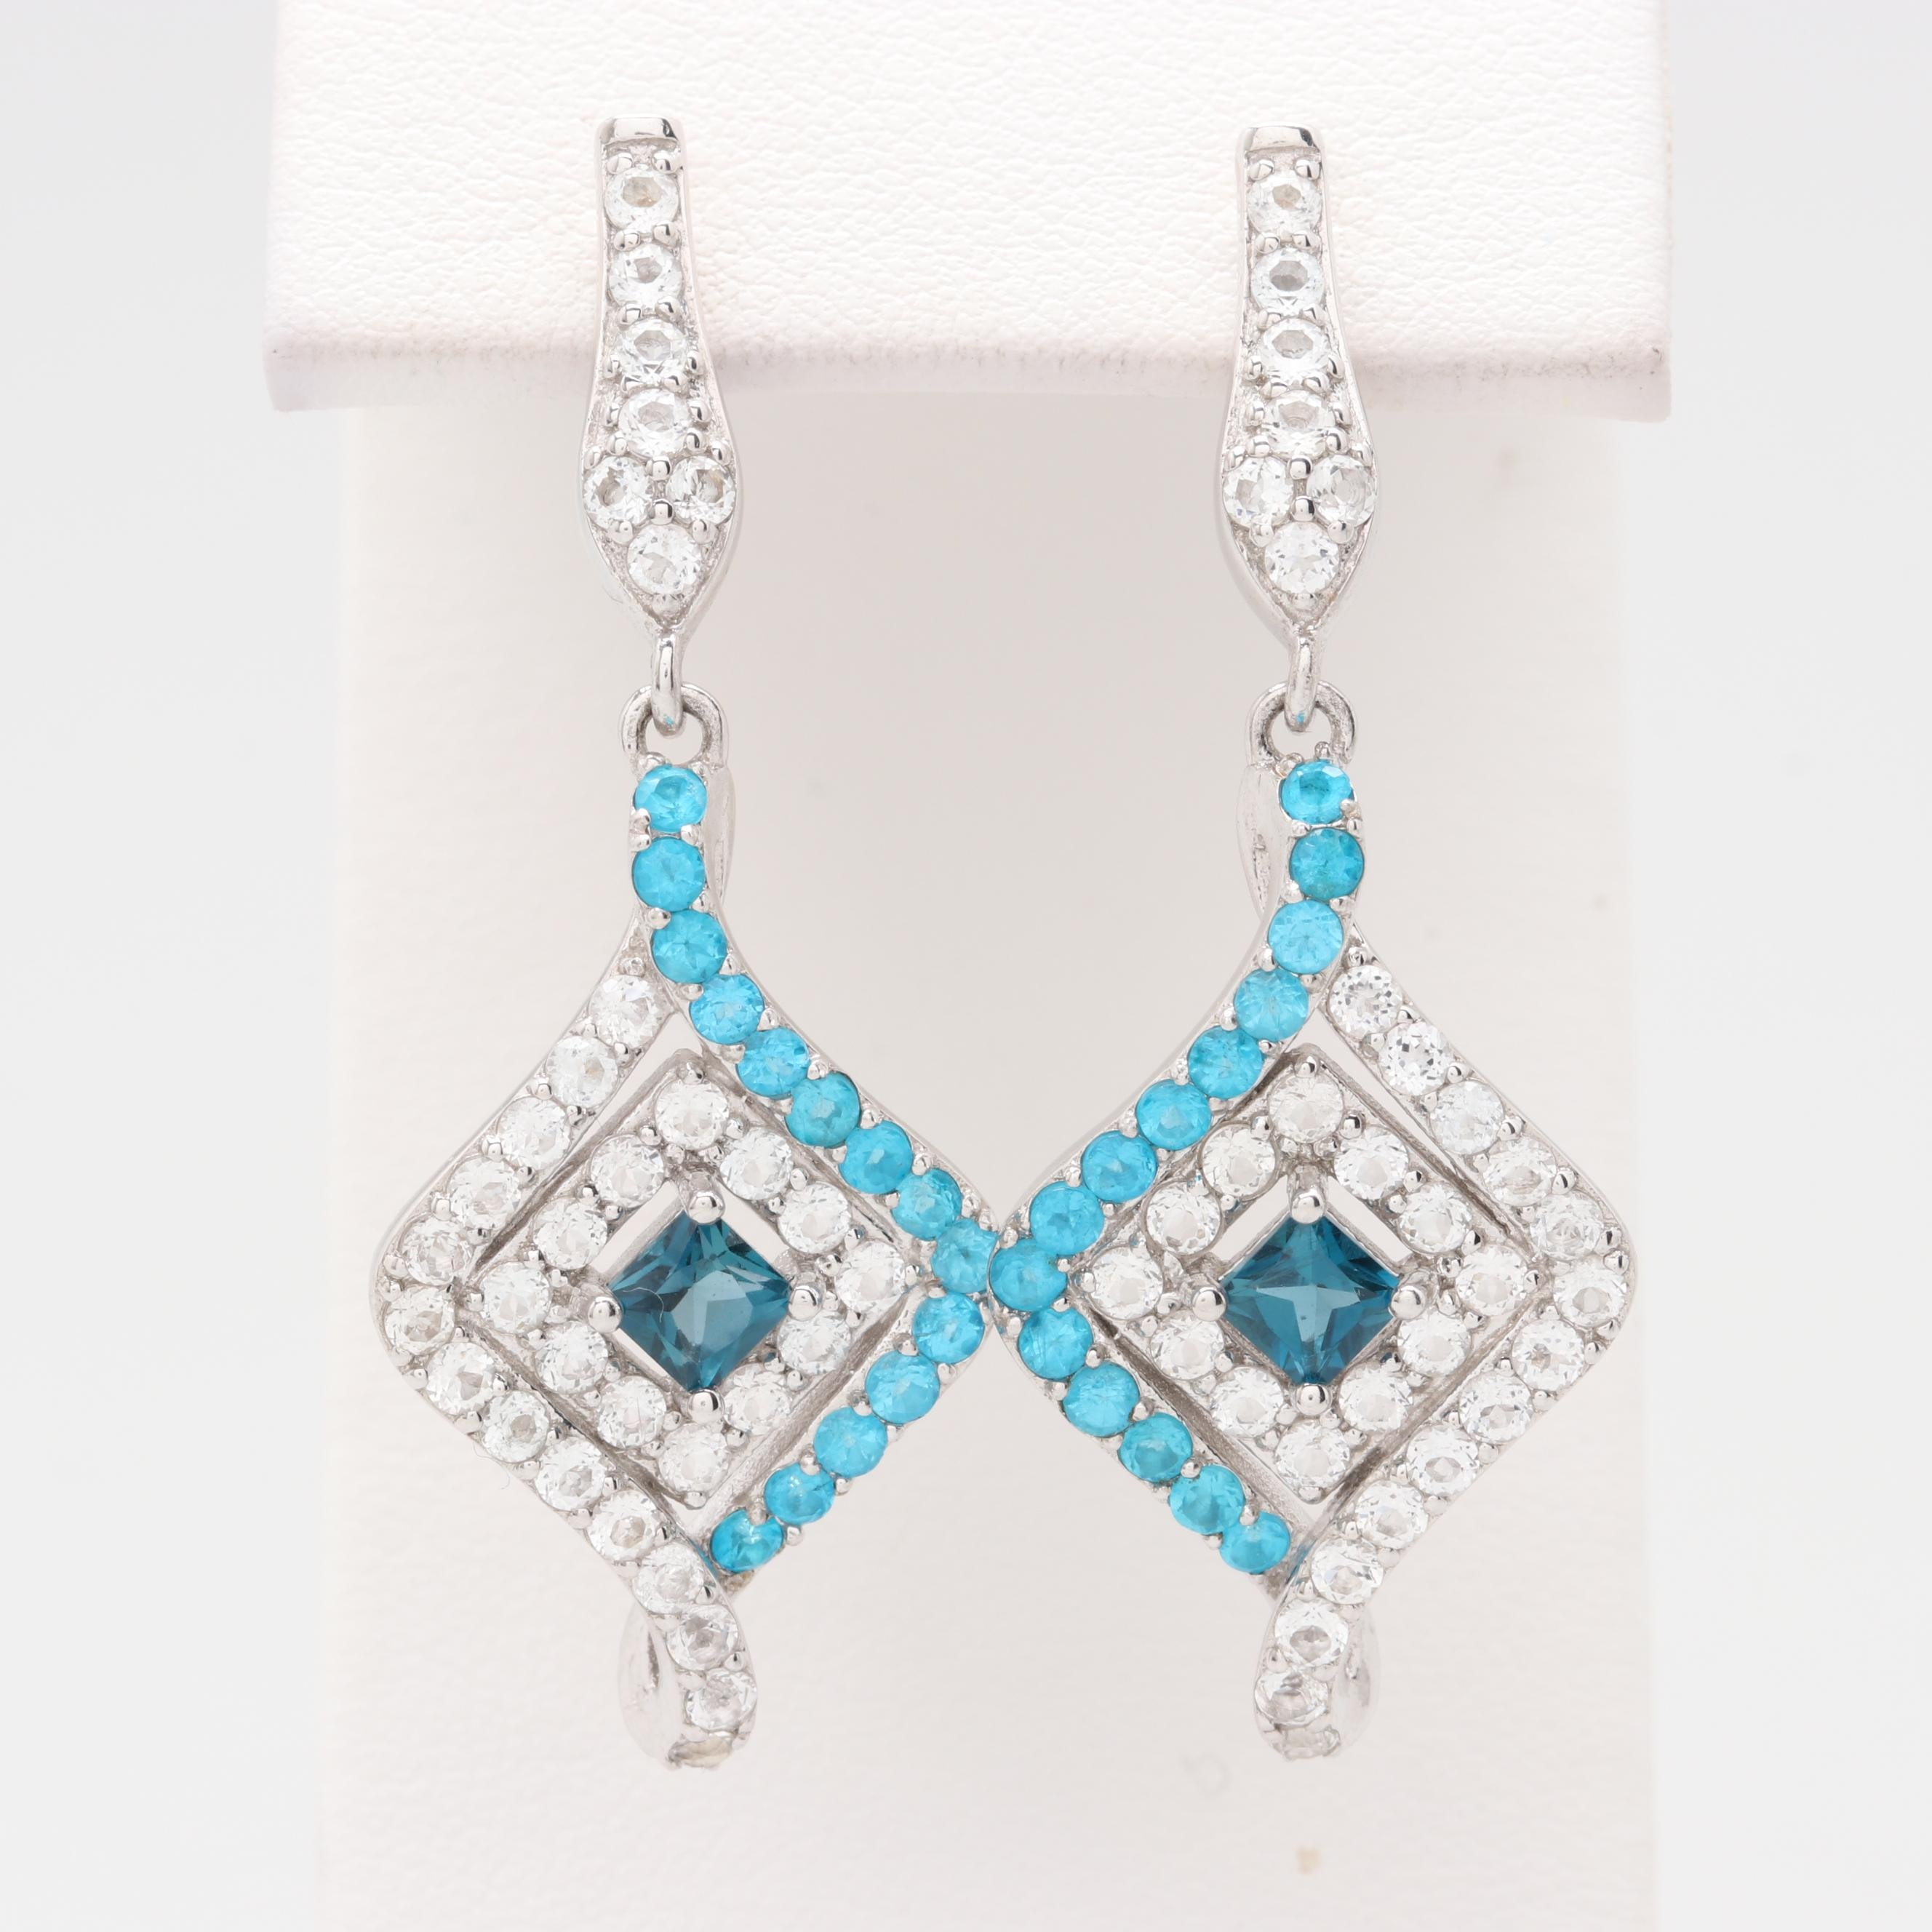 Robert Manse Sterling Silver Topaz and Apatite Earrings